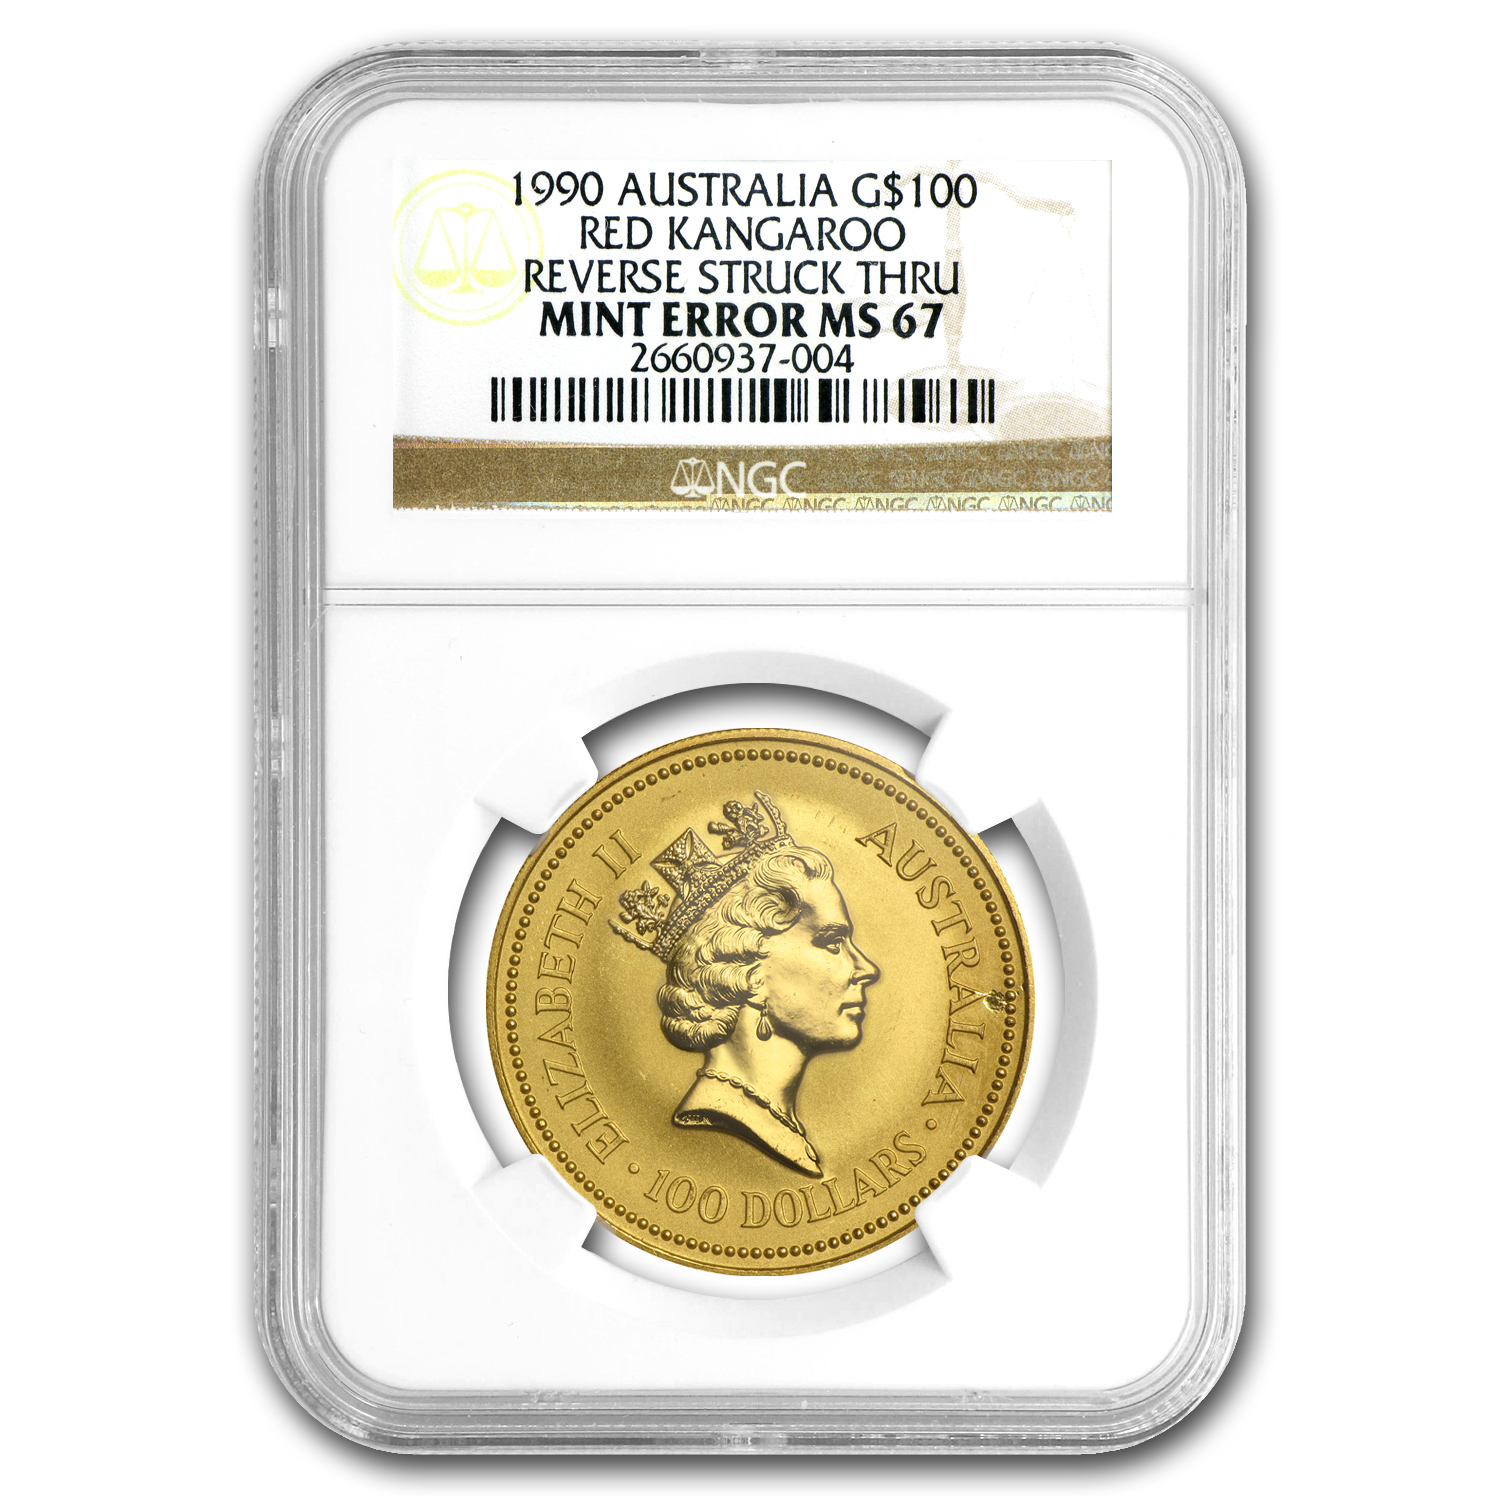 1990 AUS 1 oz Gold Nugget Reverse Struck Thru MS-67 (Mint Error)